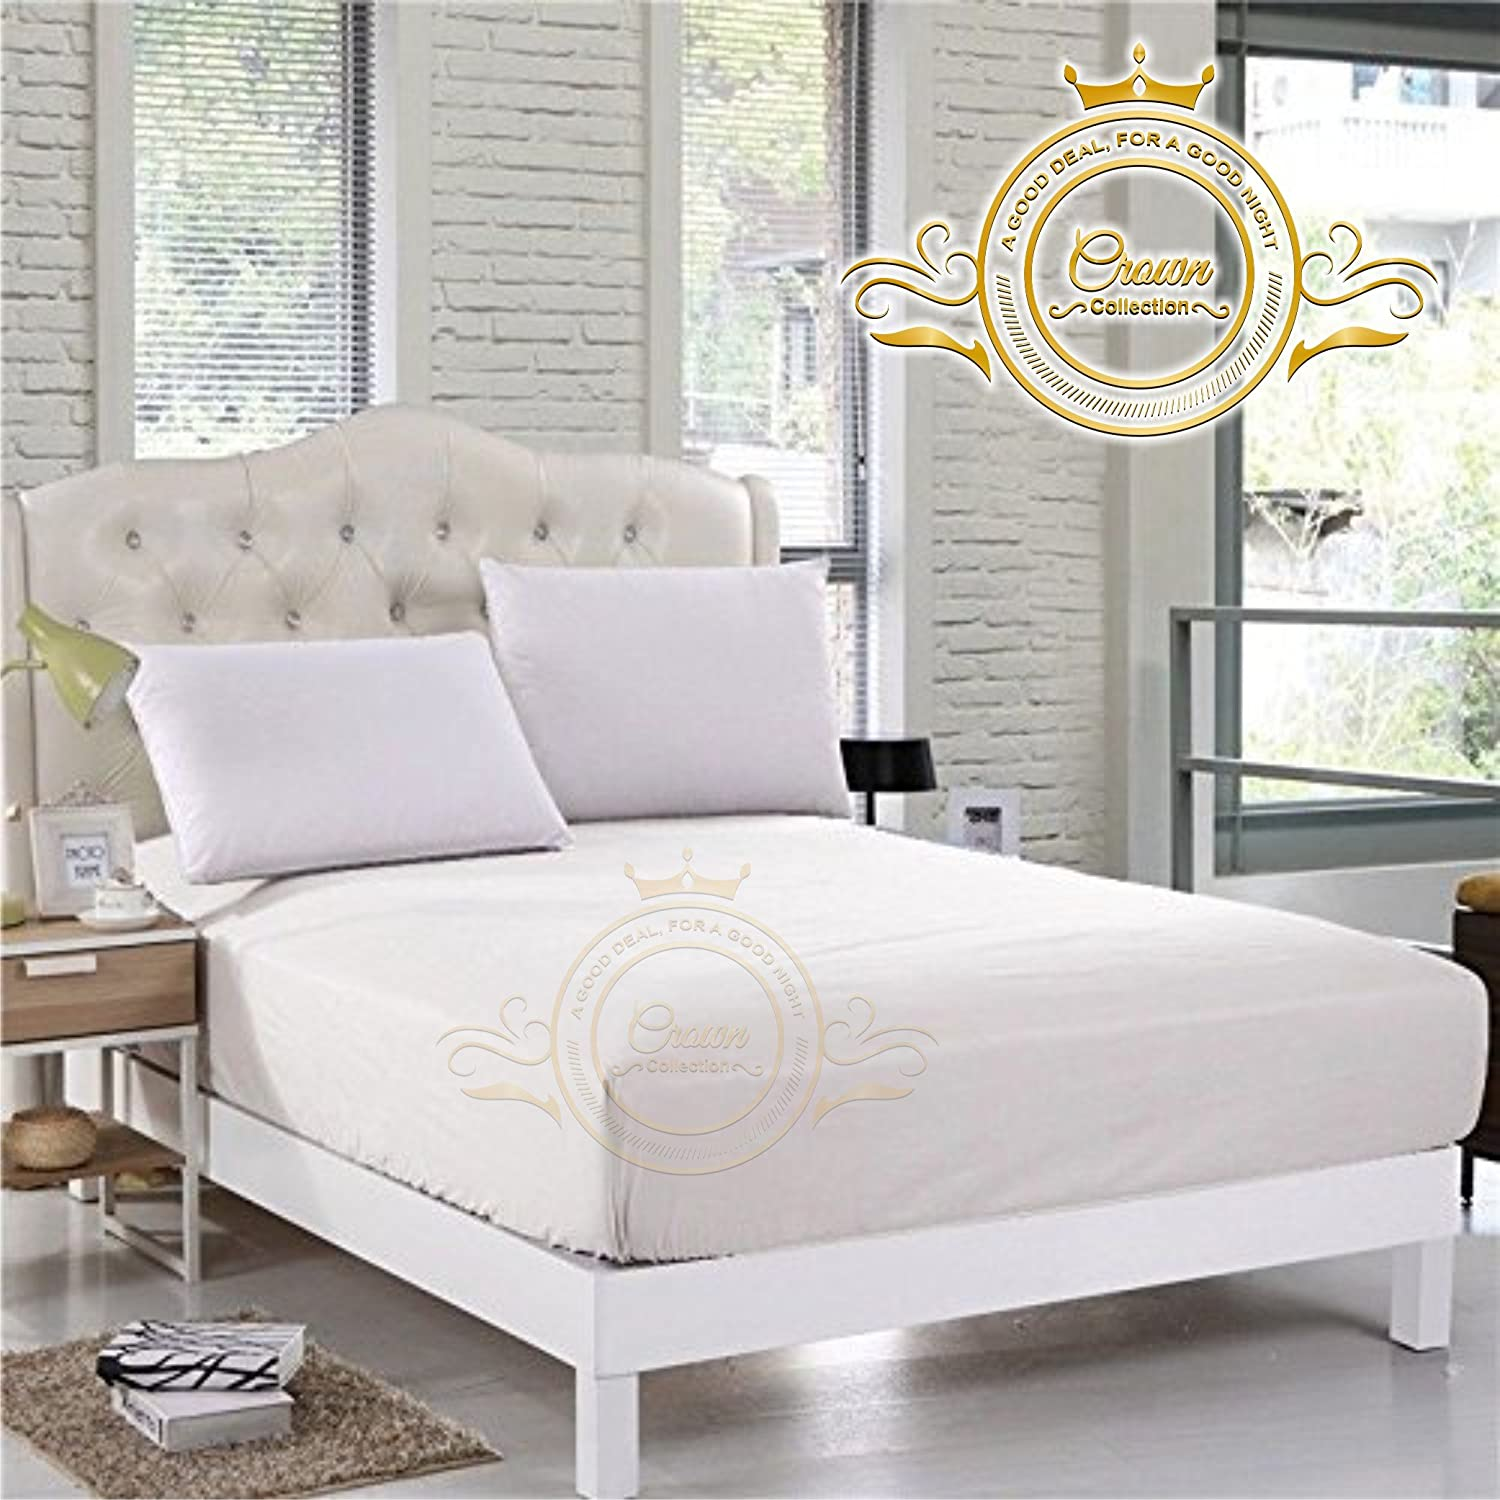 Crown Royal Hotel Collection Beddings 750 Thread Count Egyptian Cotton Fitted Sheet King Size 14 Inch Deep Pocket White Solid Export Quality